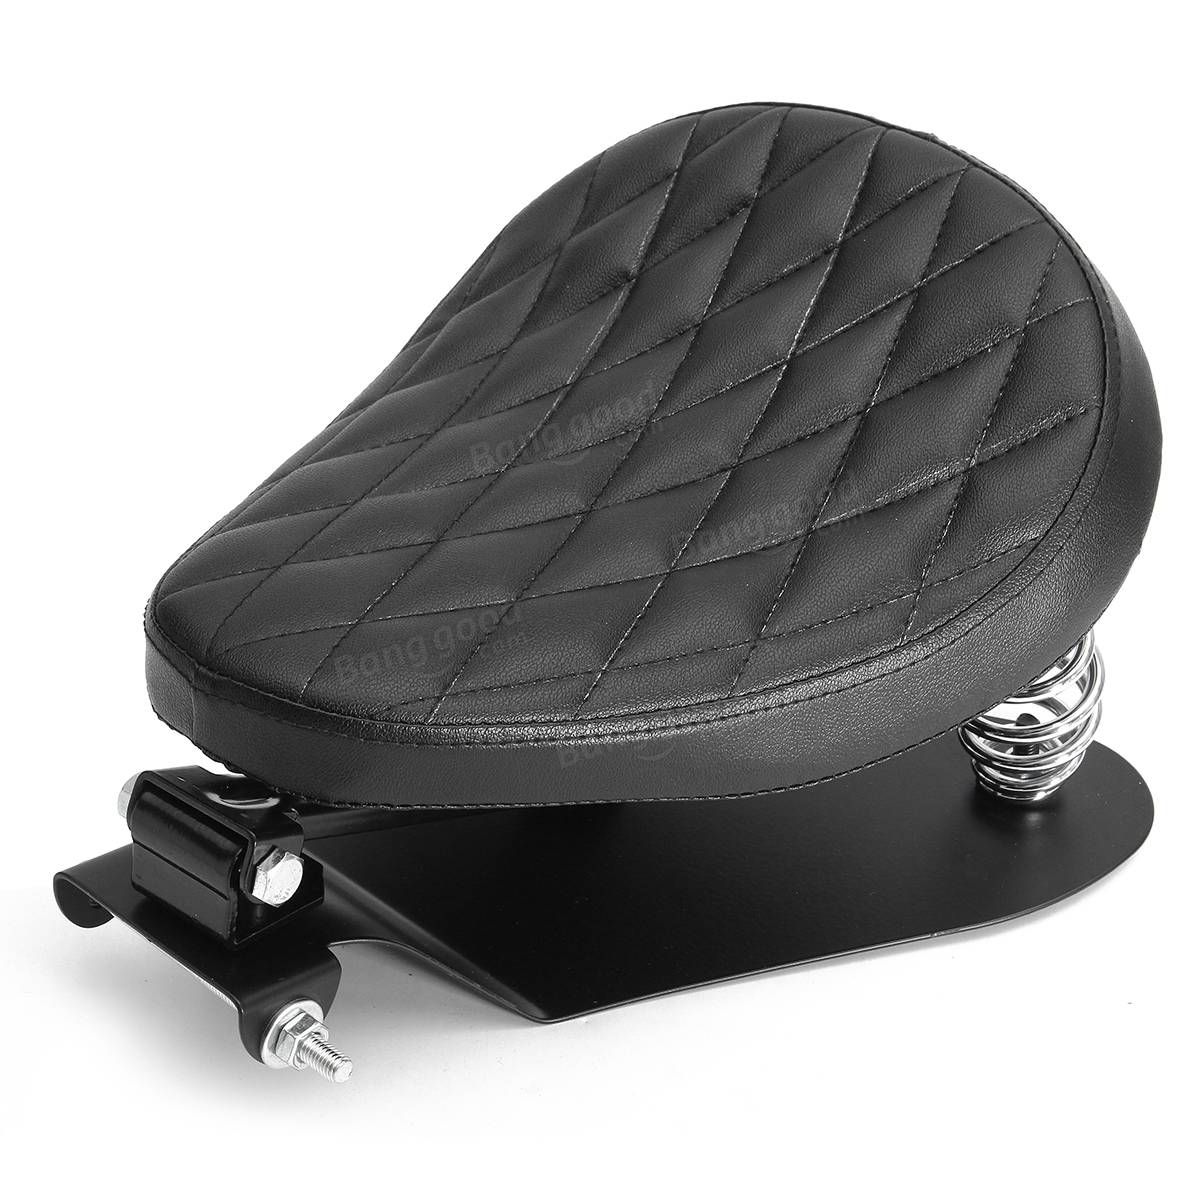 Only Us 98 99 Buy Best Motorcycle Solo Seat Cushion With Brackets Black Diamond For Harley Bobber Chopper Sale Online Stor Harley Bobber Bobber Bobber Chopper